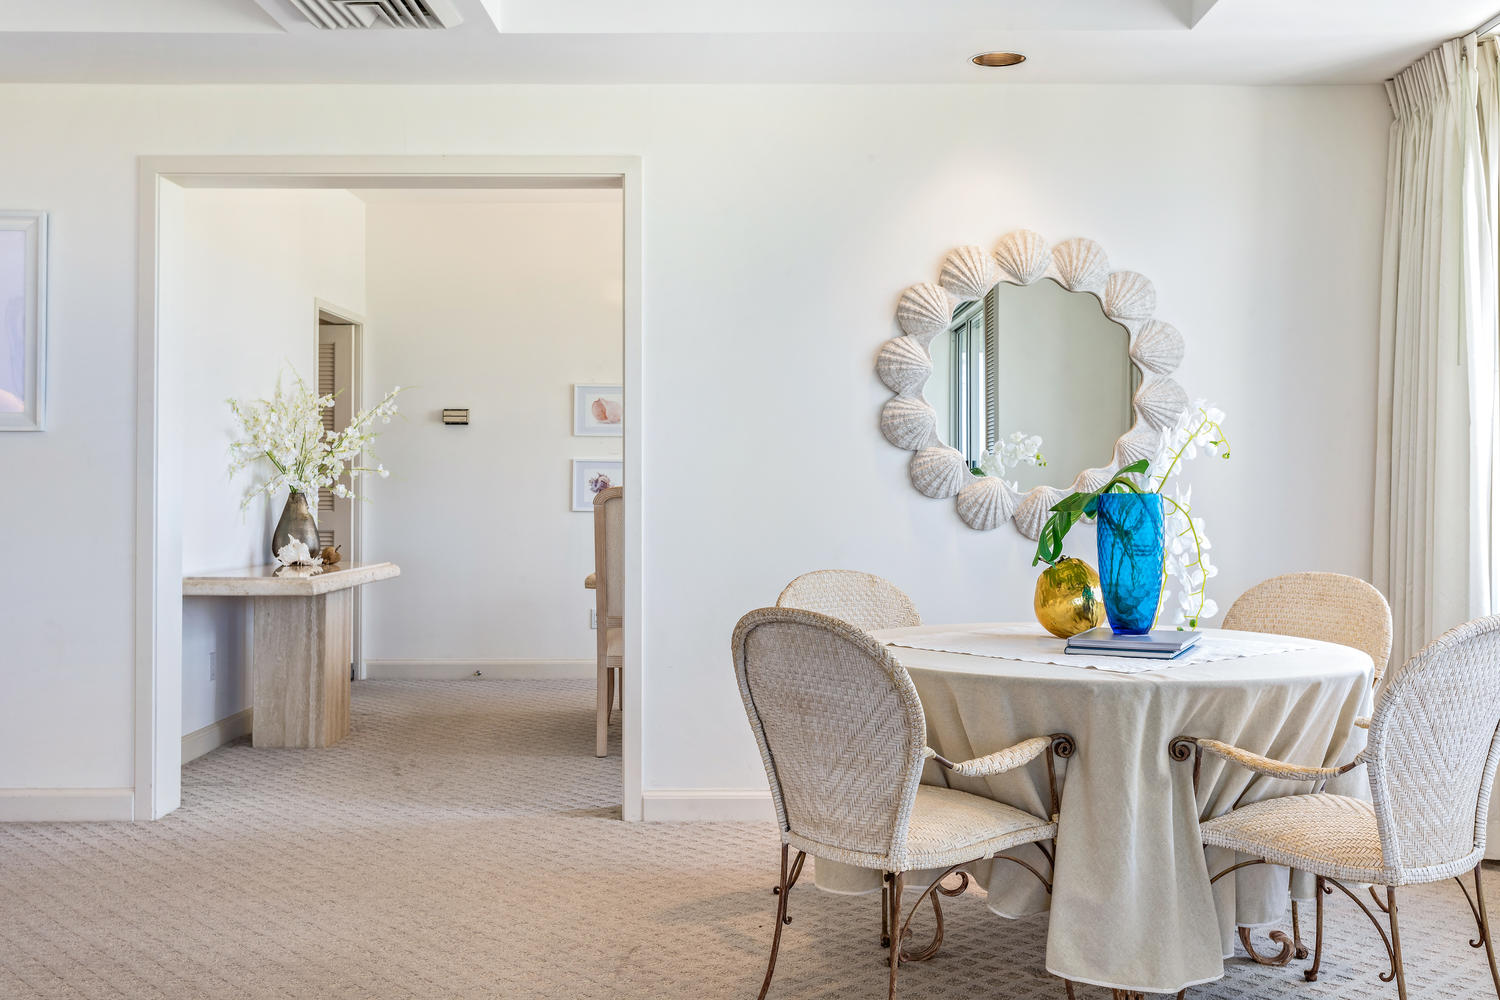 Florals and on-trend, simple accessories bring color and interest to rooms | Penthouse unit within Waikoloa Resort, Big Island of Hawaii.